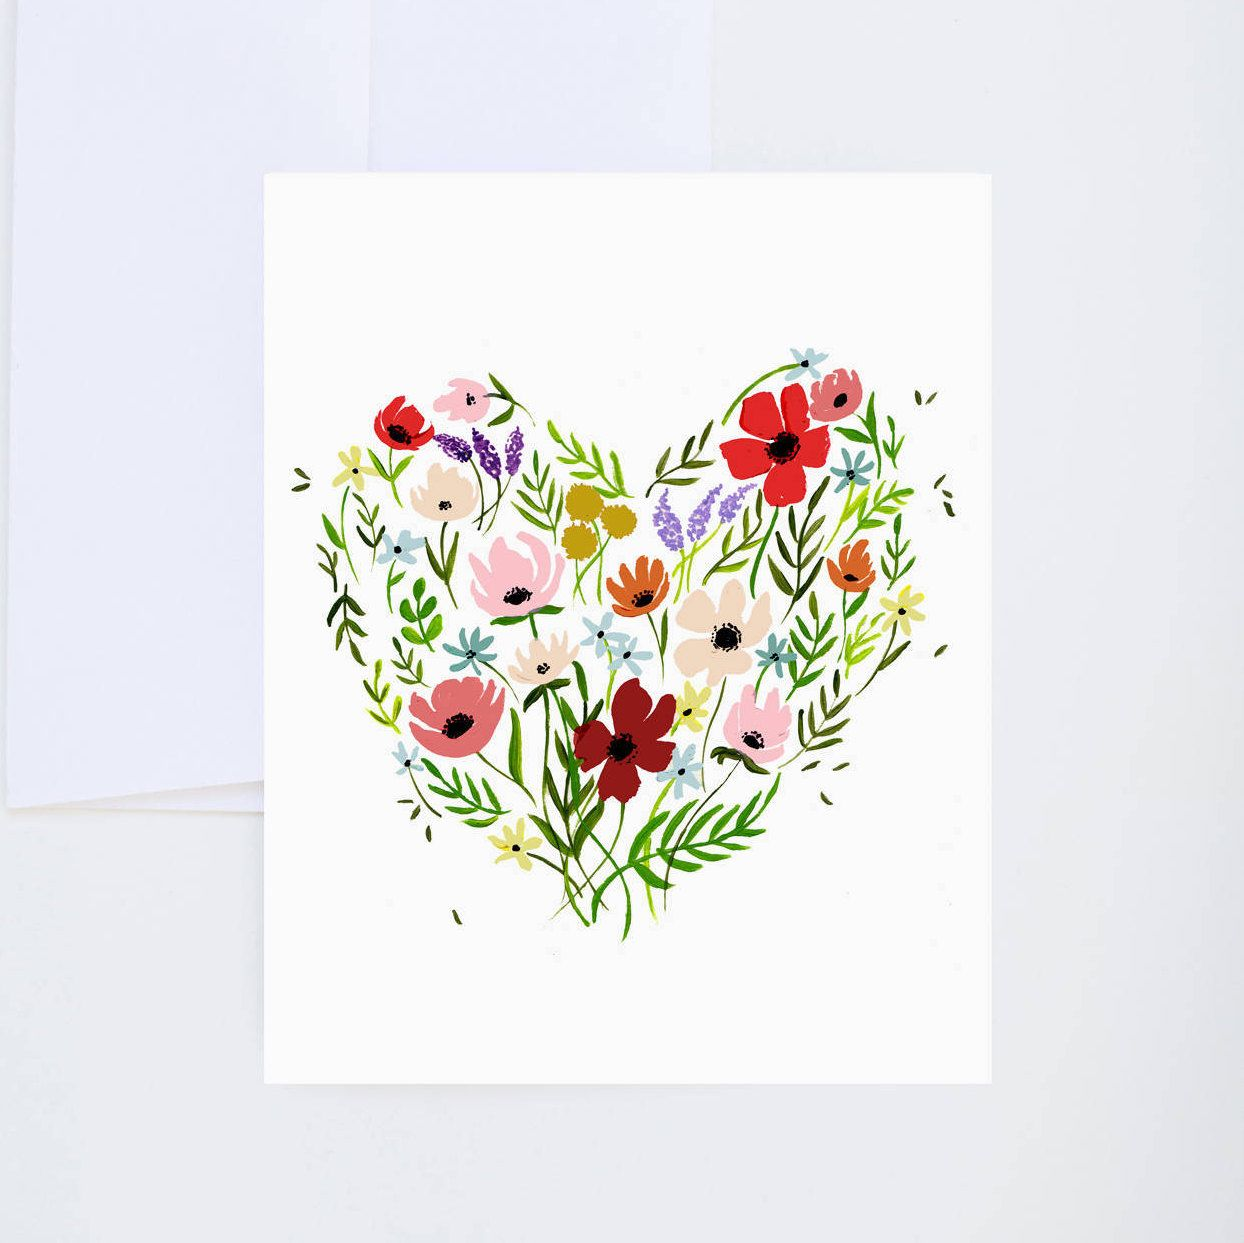 Floral Heart Painted Friendship Love Greeting Card A 2